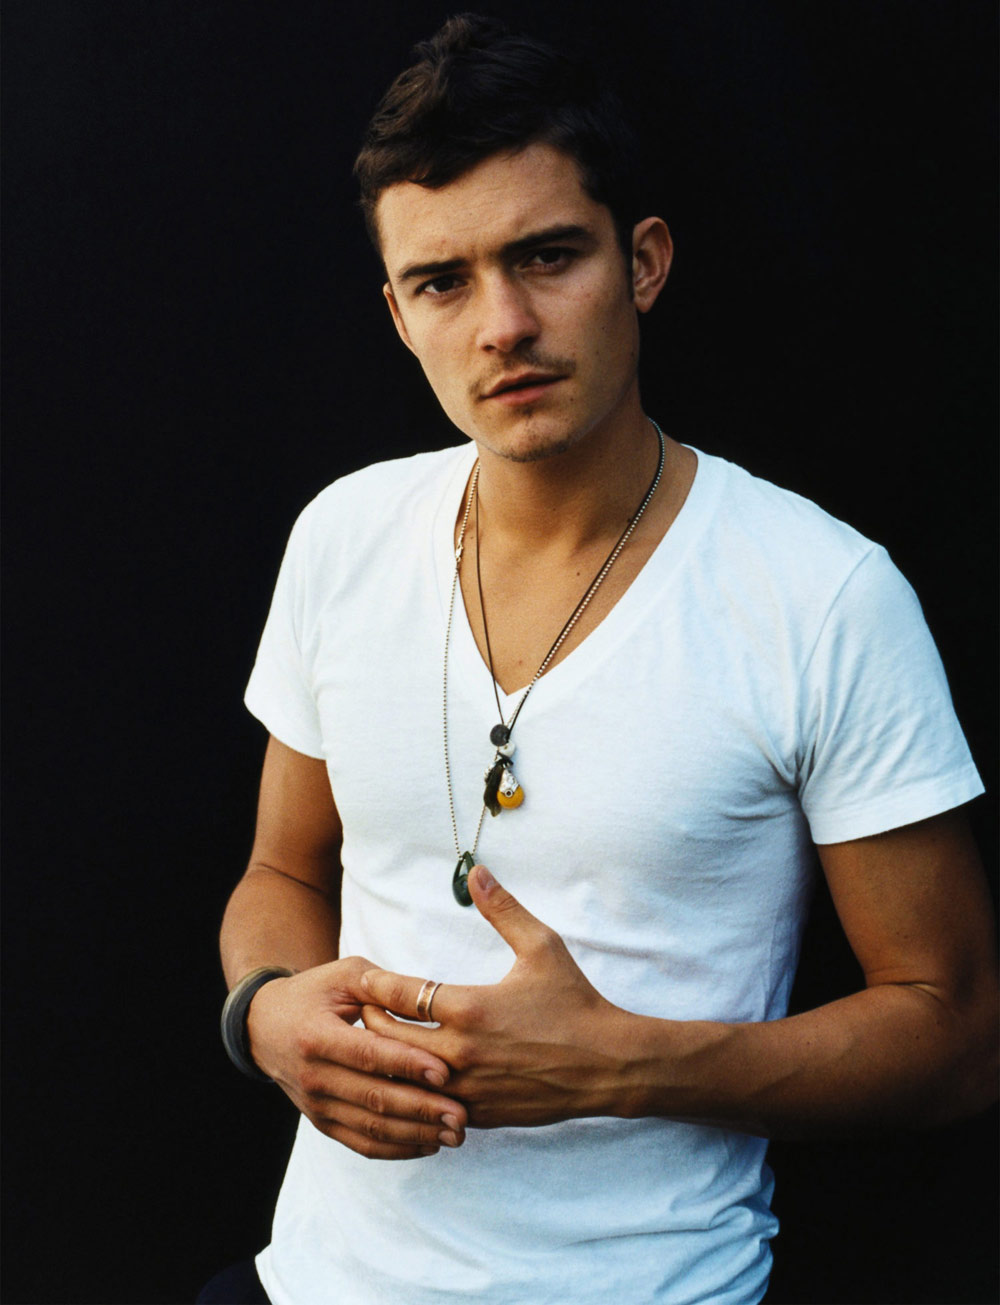 Orlando Bloom Chest and Biceps Size